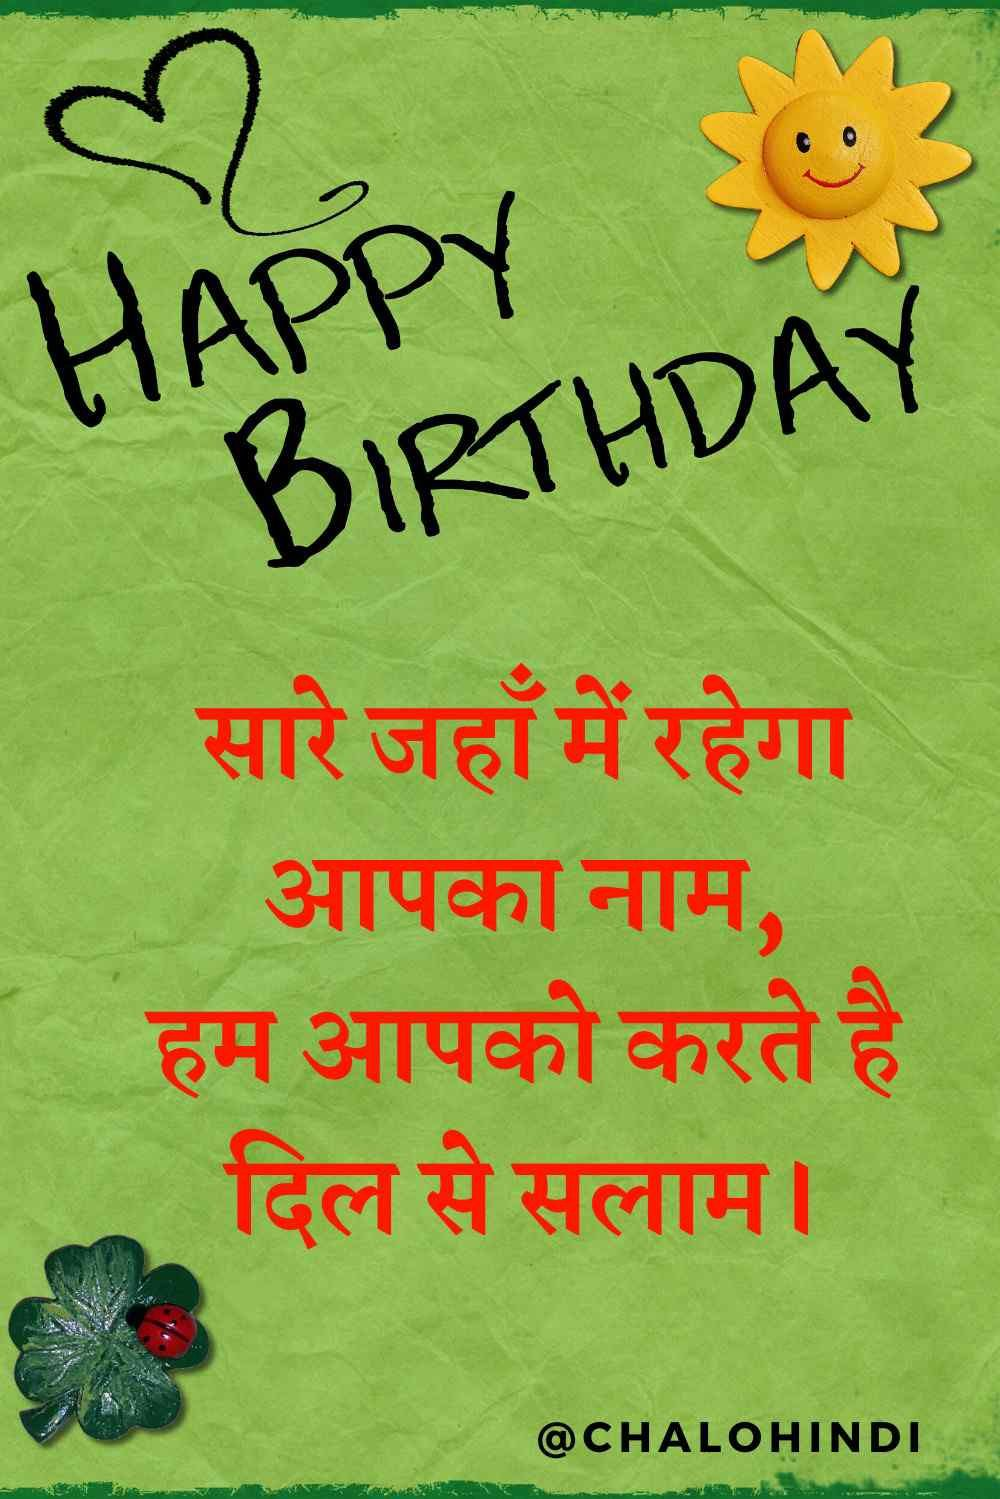 100 Unique Collection Of Birthday Wishes For Bhabhi With Images 2020 Birthday Birthday Wishes Wish